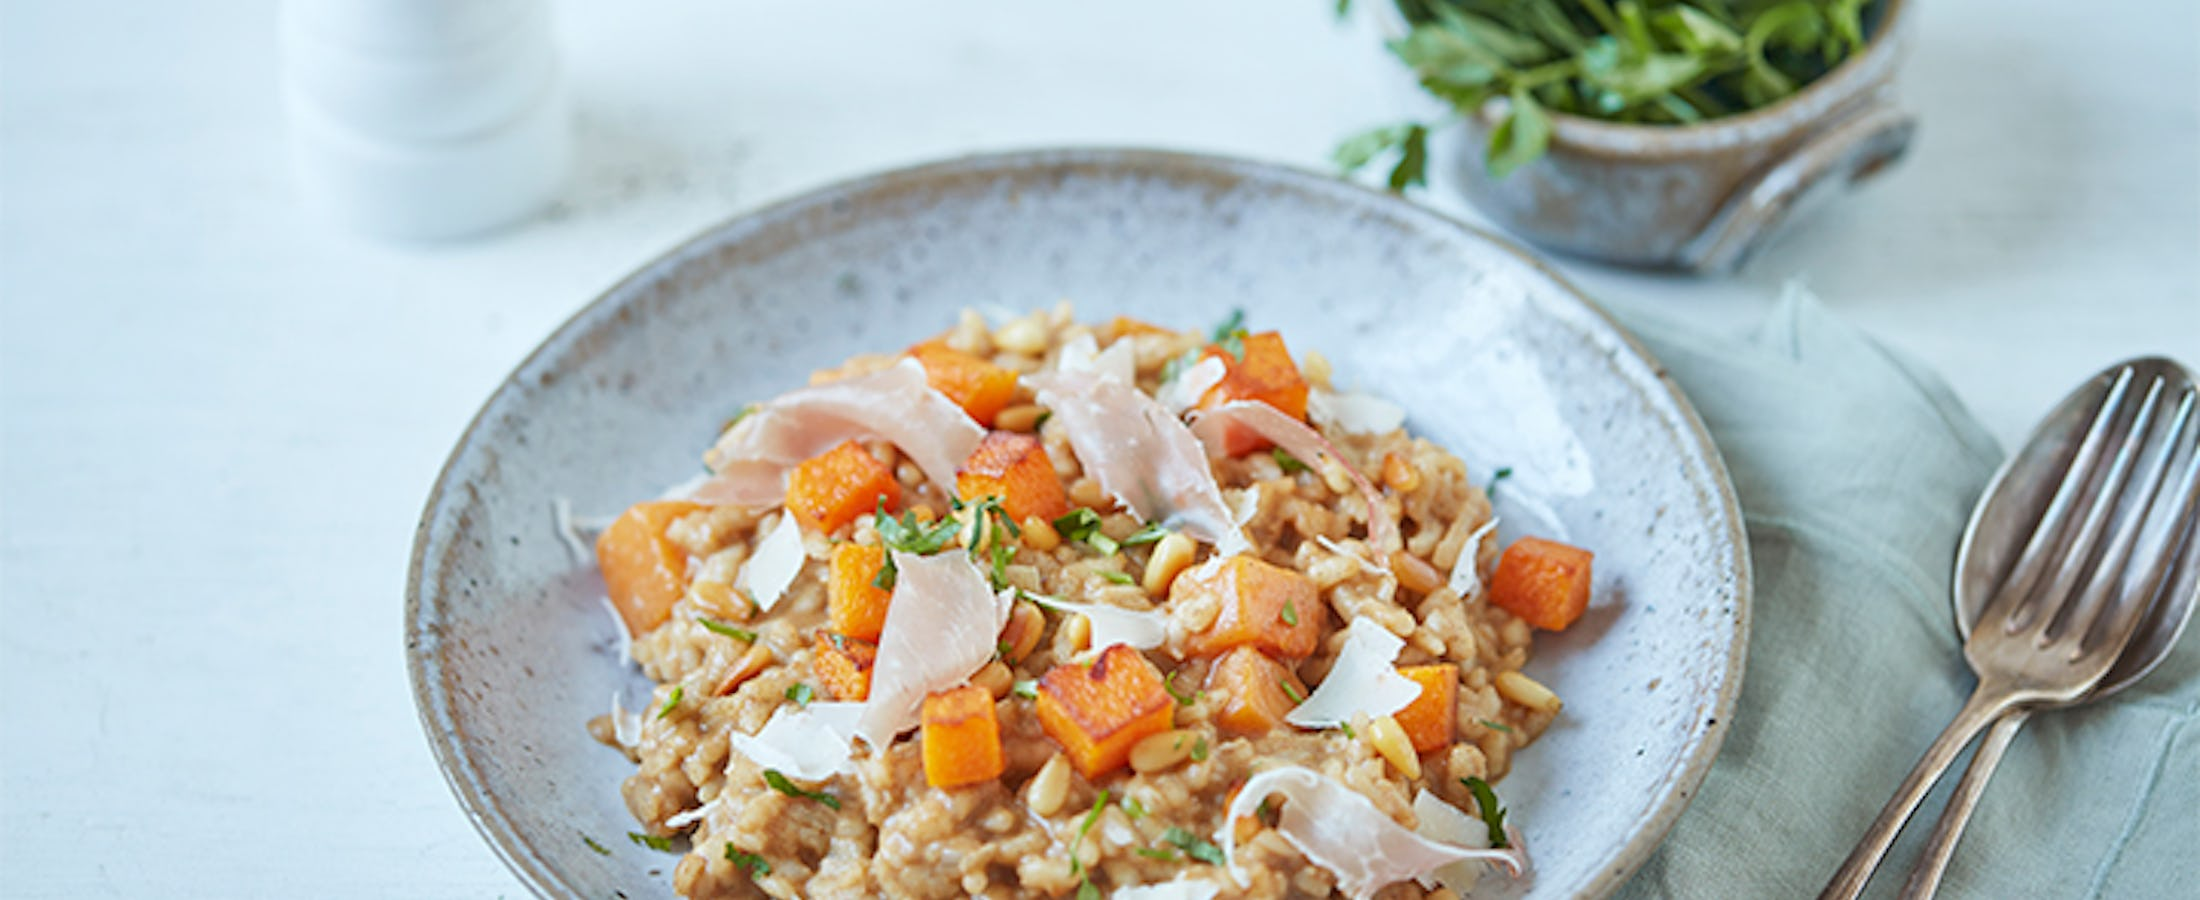 Spiced Butternut Squash Risotto